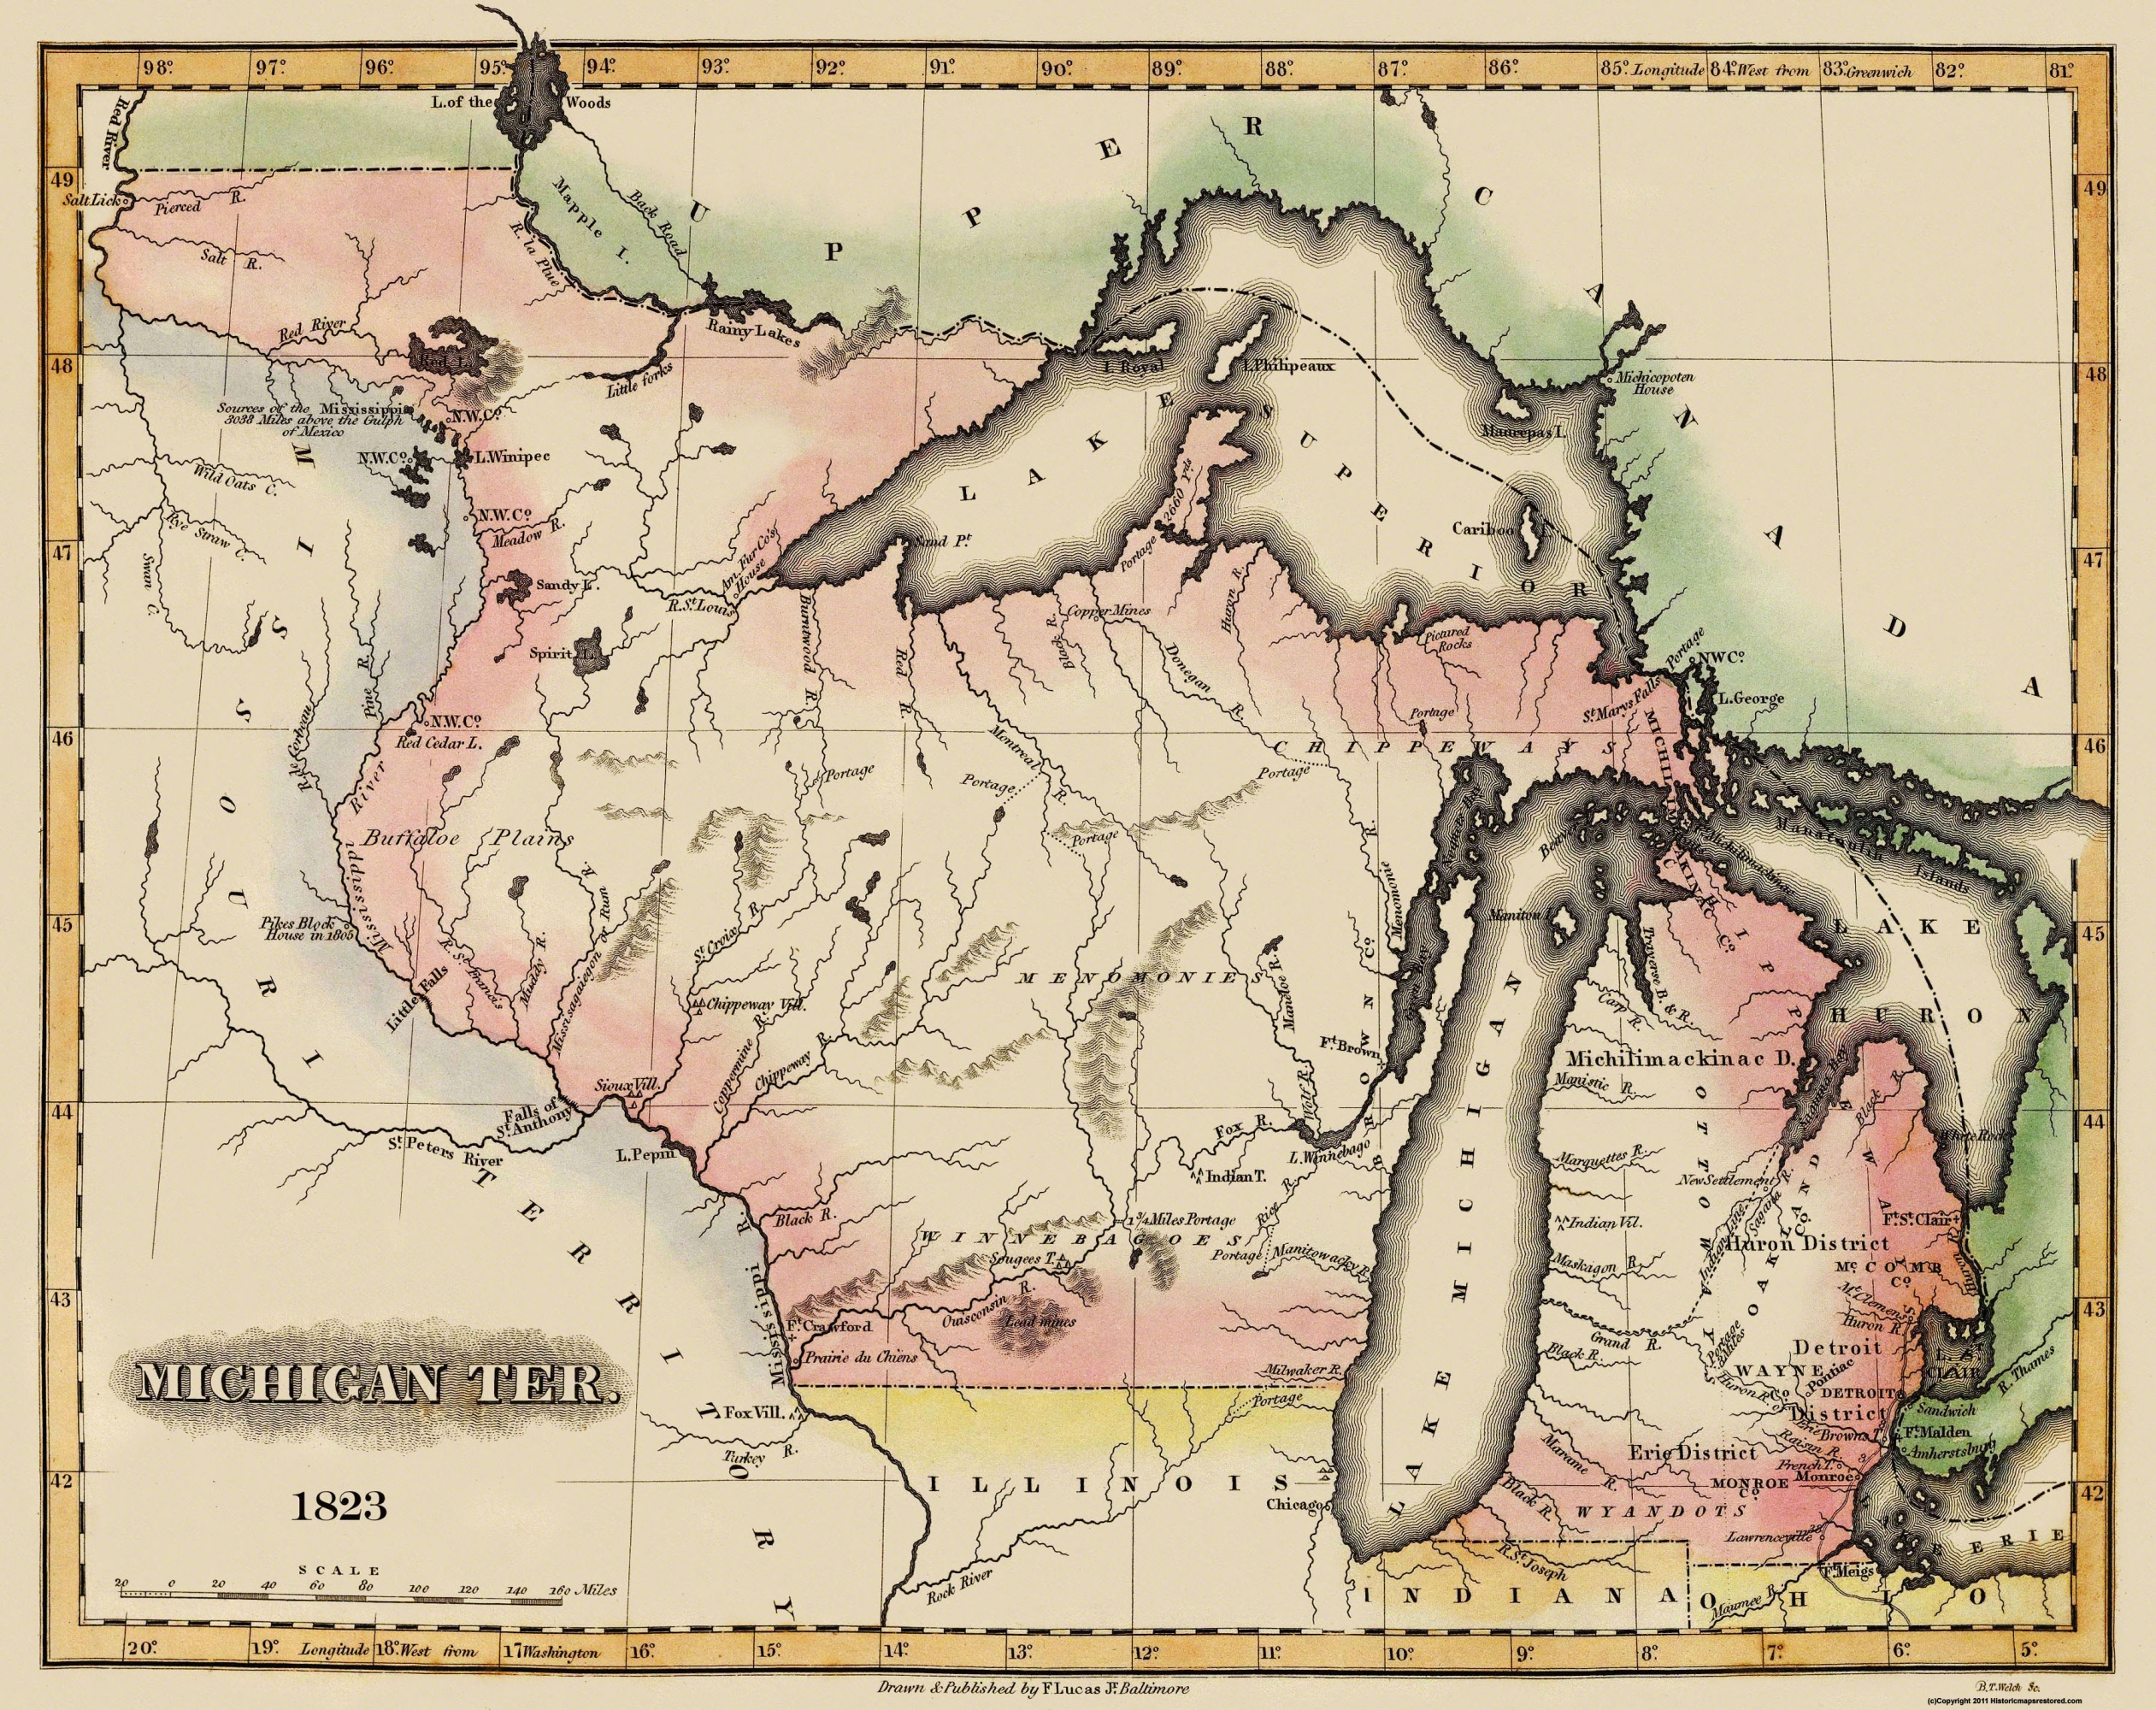 Old State Map Michigan Territory Lucas 1823